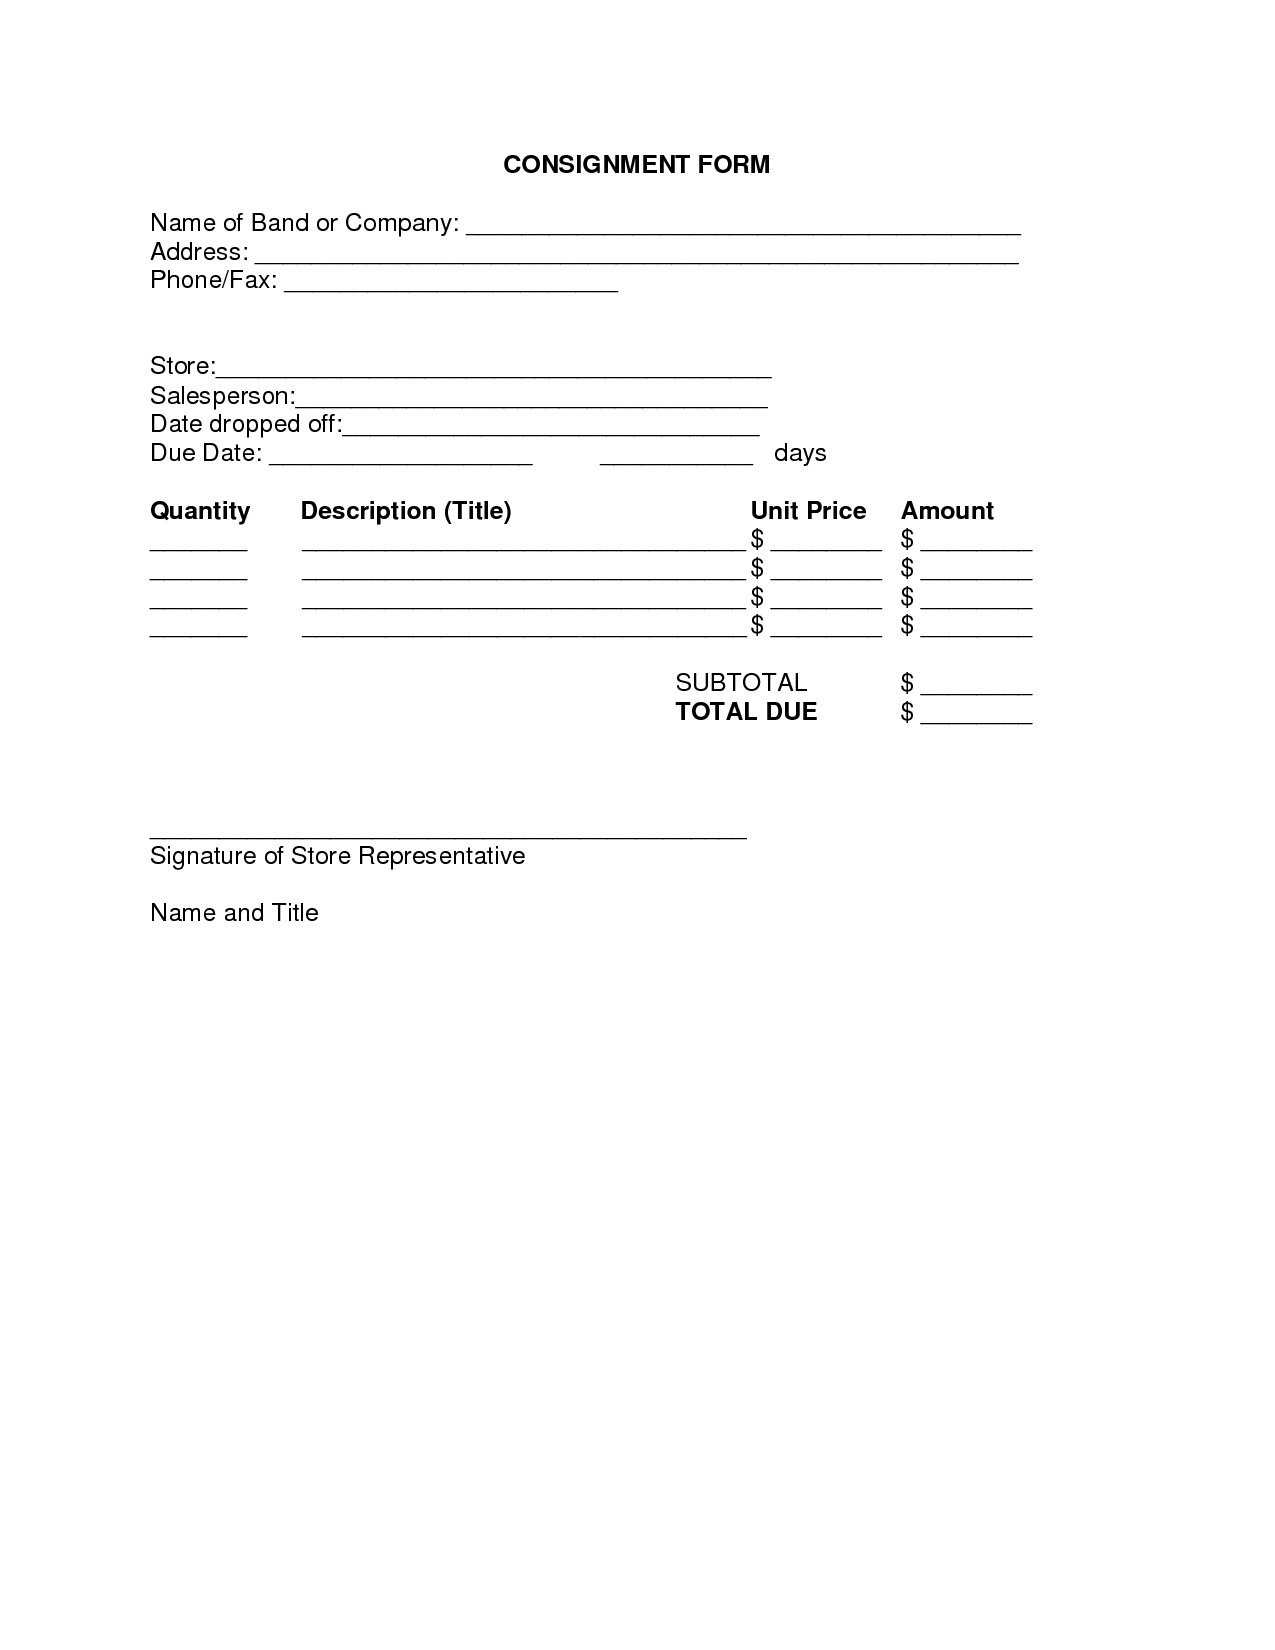 Consignment Form By Brittanygibbons  Consignment Forms  Real